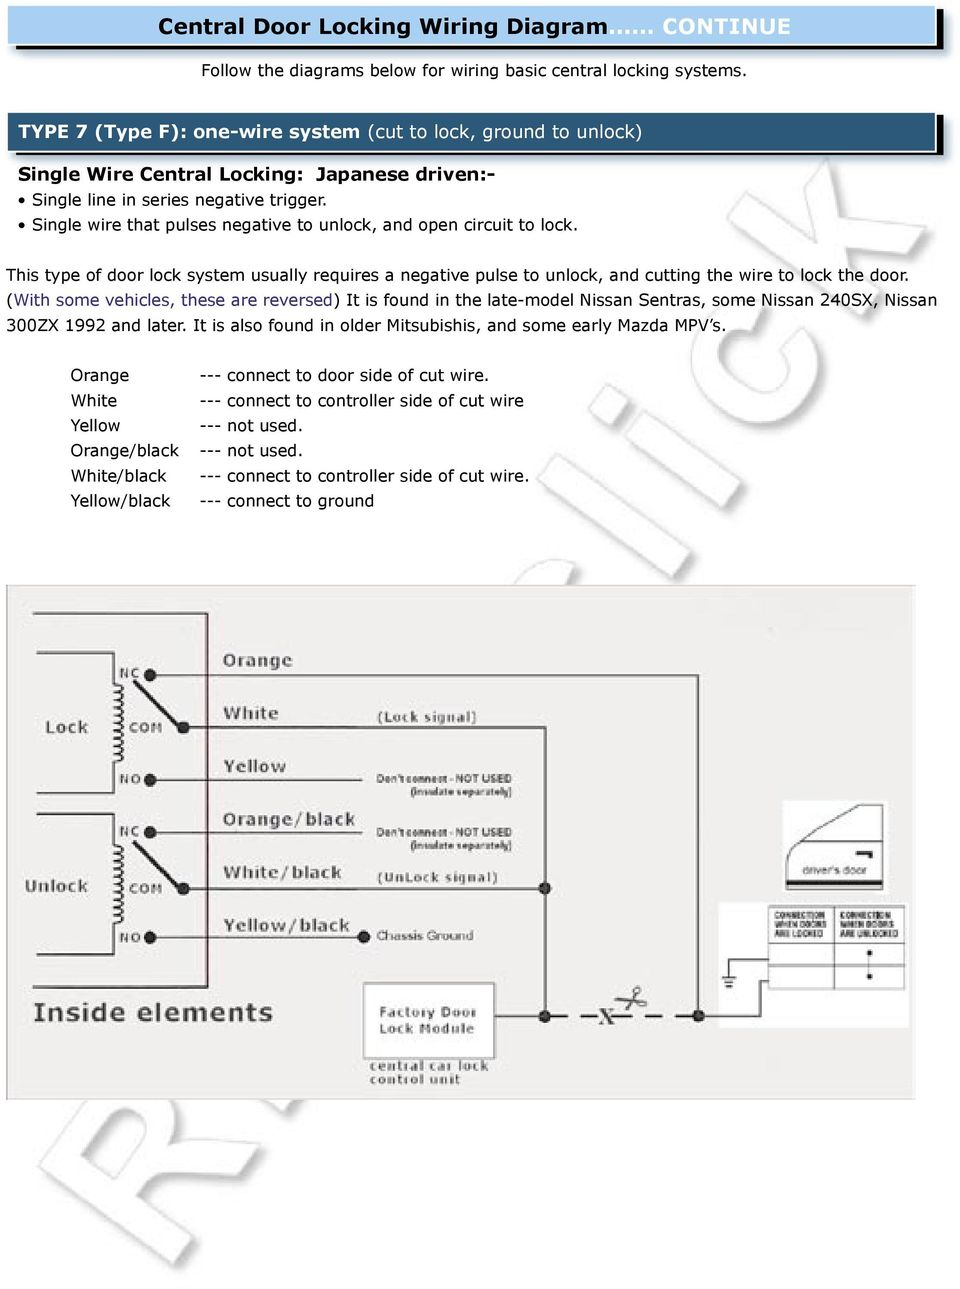 Fitting Installation Guide Universal Pdf Mitsubishi Central Locking Wiring Diagram This Type Of Door Lock System Usually Requires A Negative Pulse To Unlock And Cutting